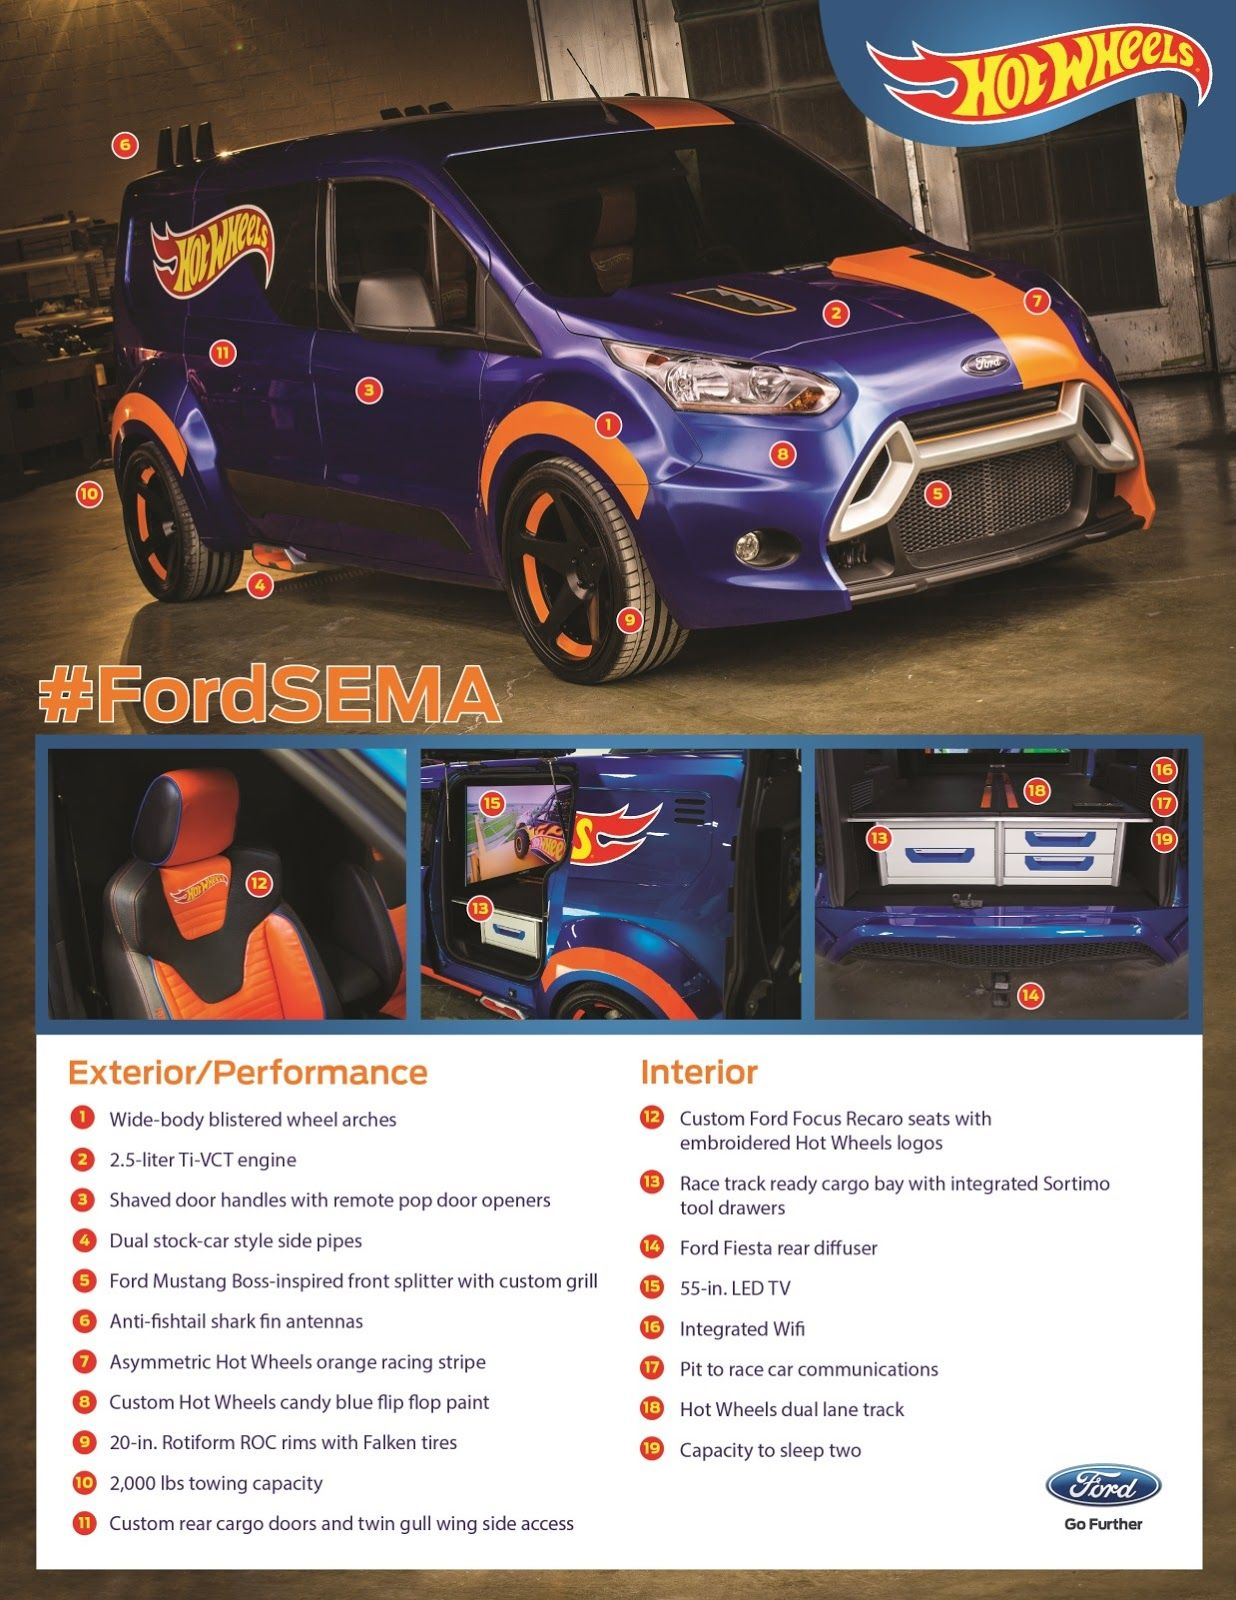 2014 Ford Transit Connect Hot Wheels Concept The Hot Wheels